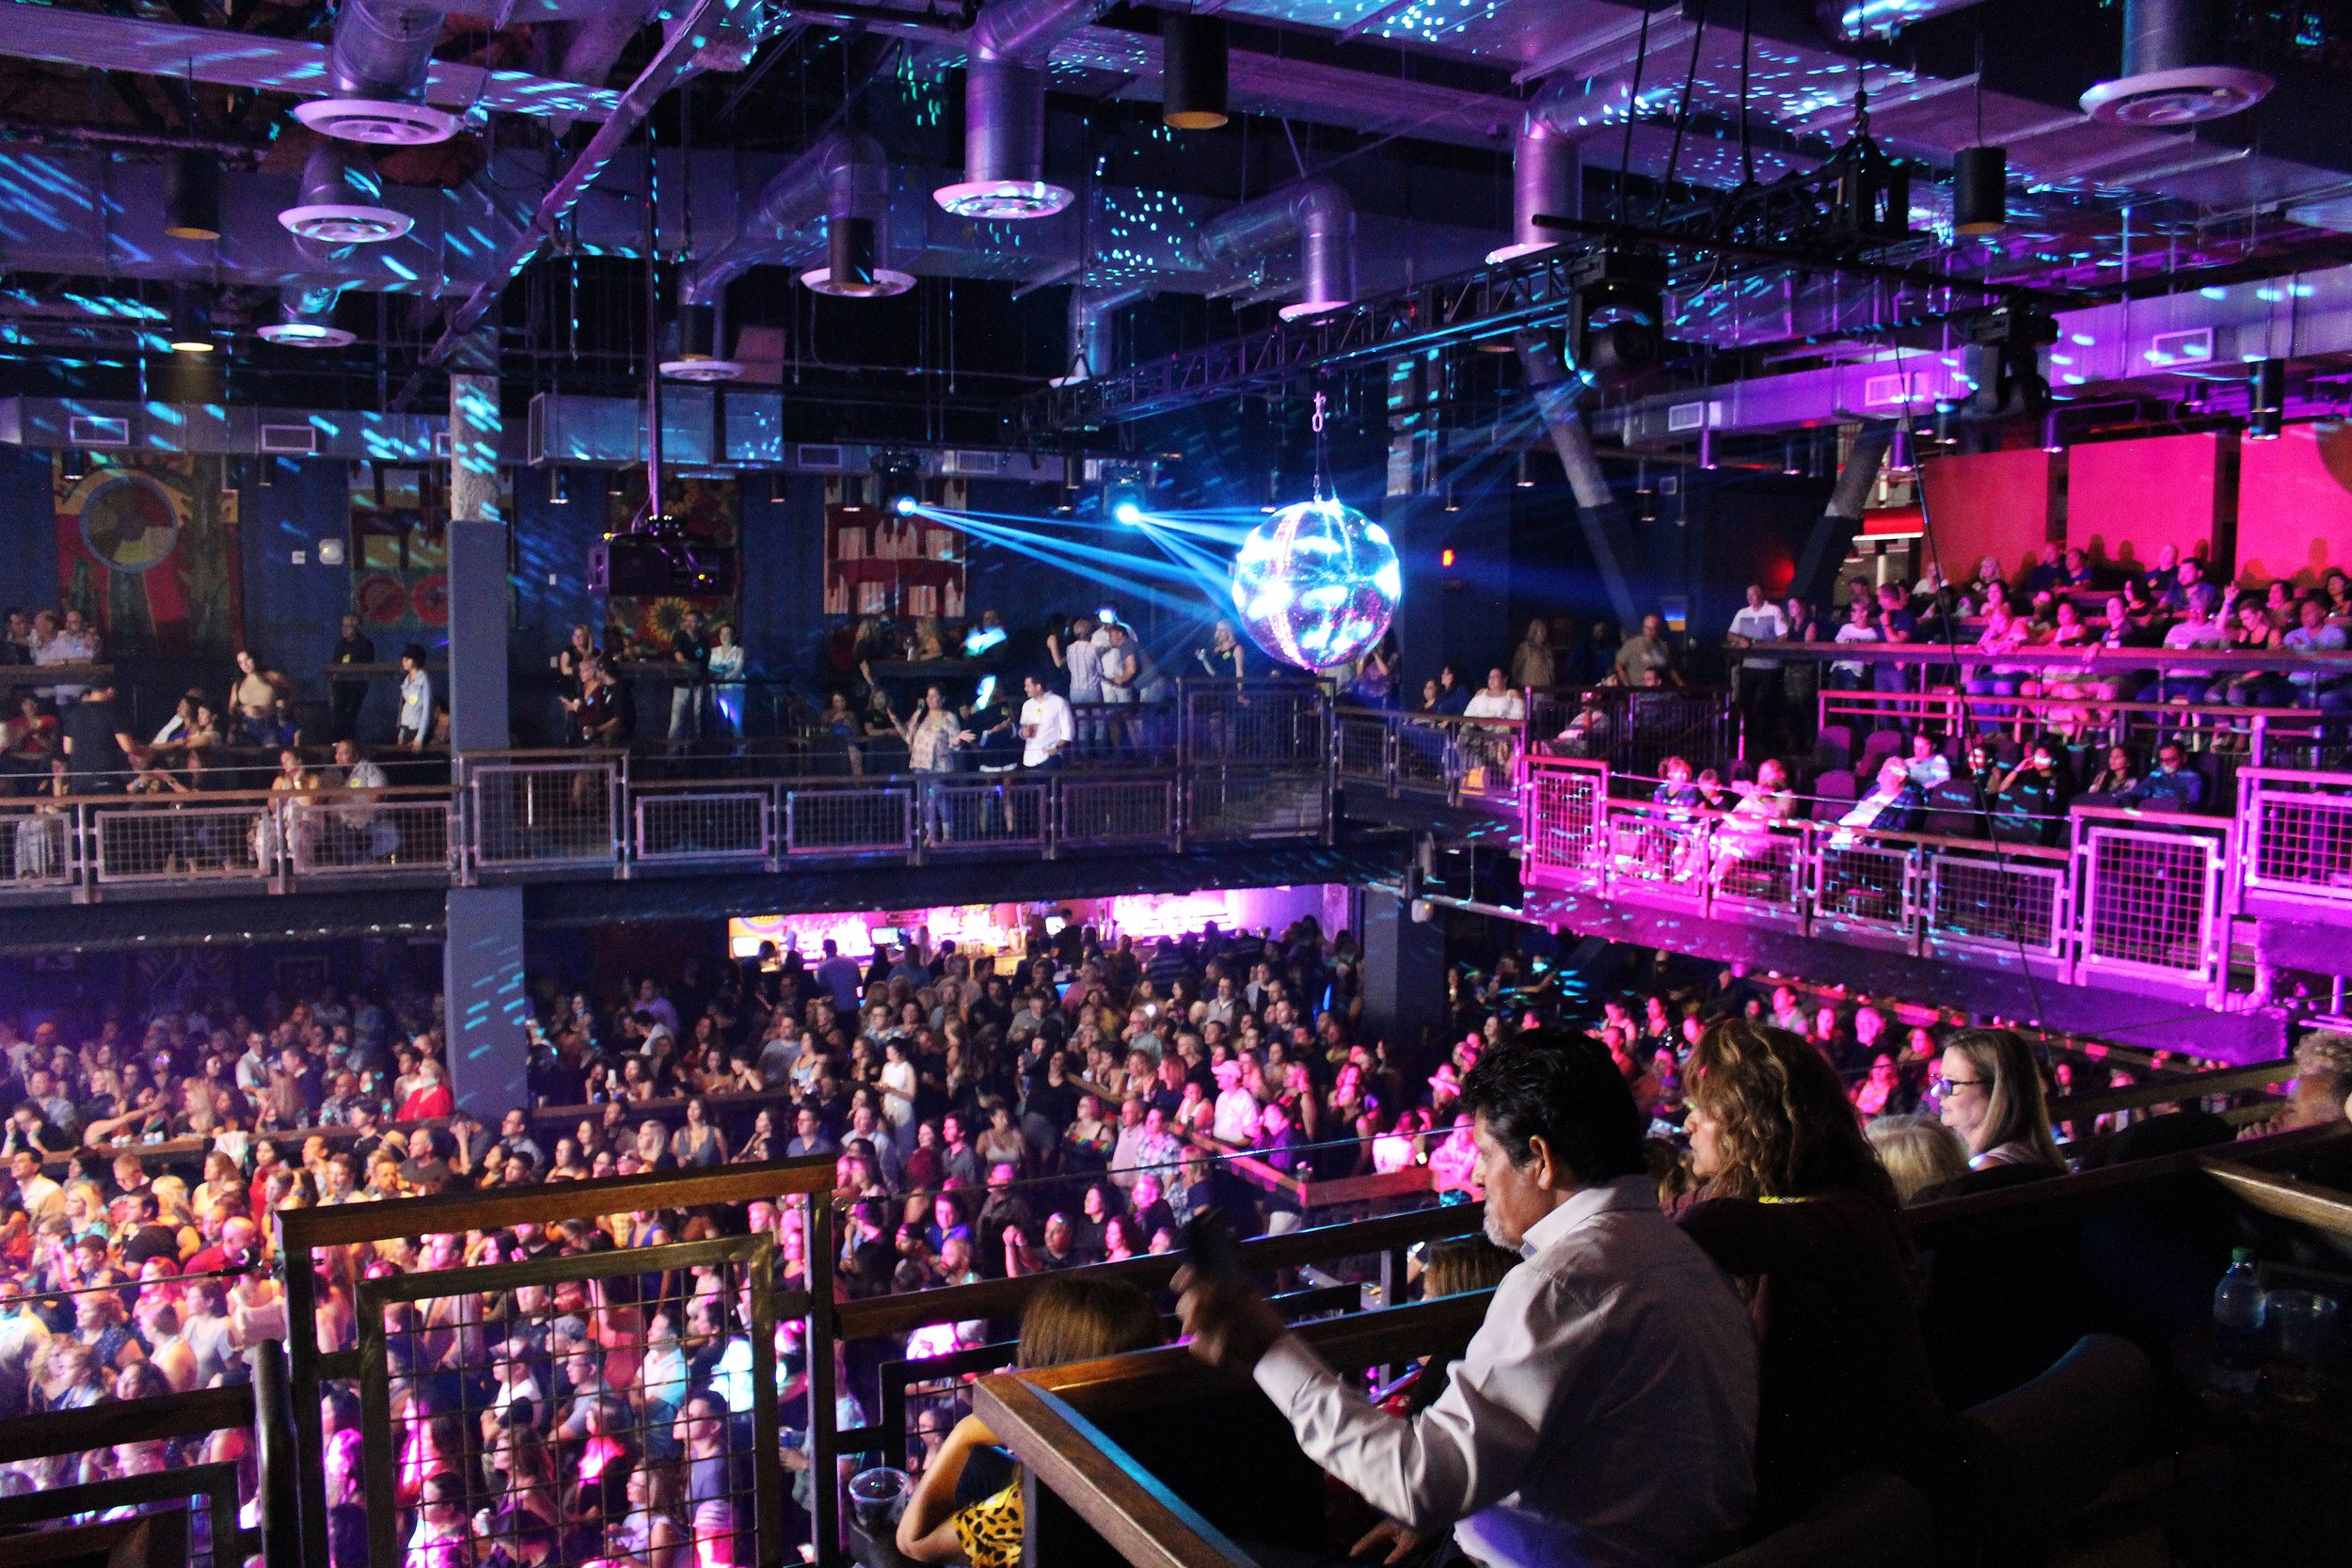 The crowd at House of Blues Anaheim!!